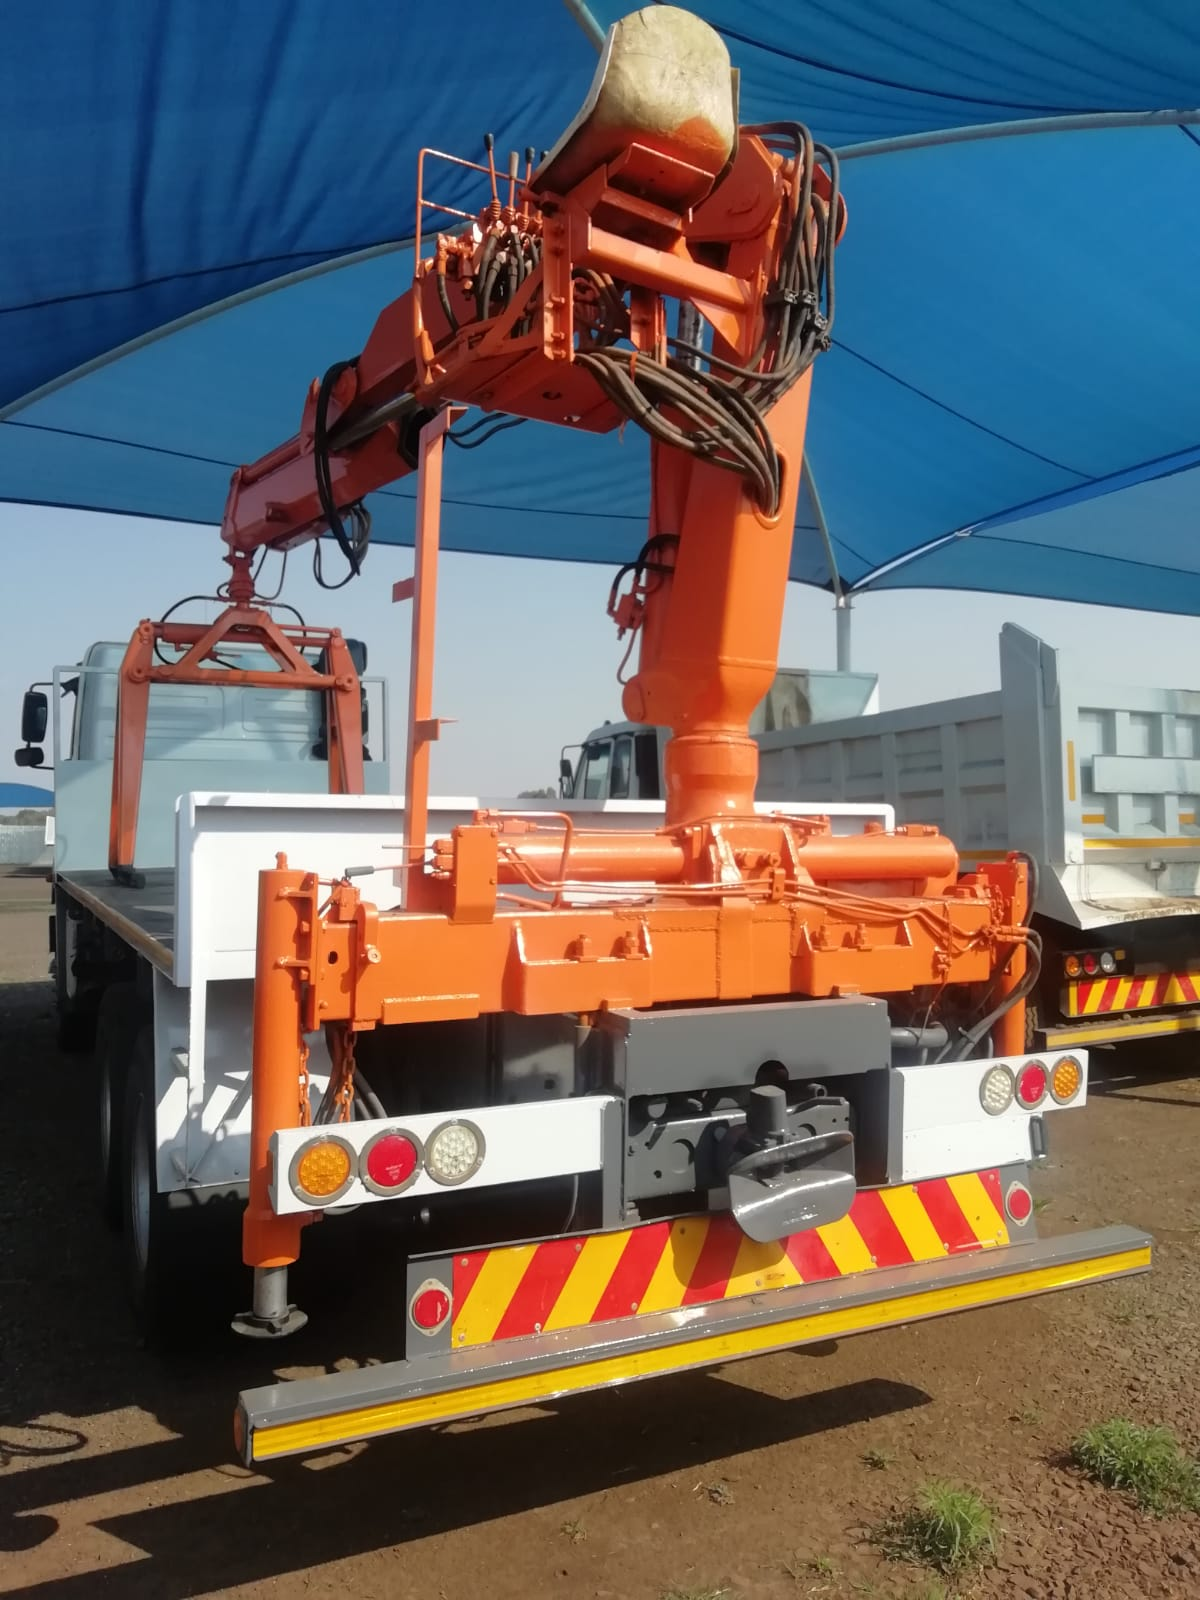 Used 2008 Mercedes Benz 3335 Axor Brick Crane Truck for sale